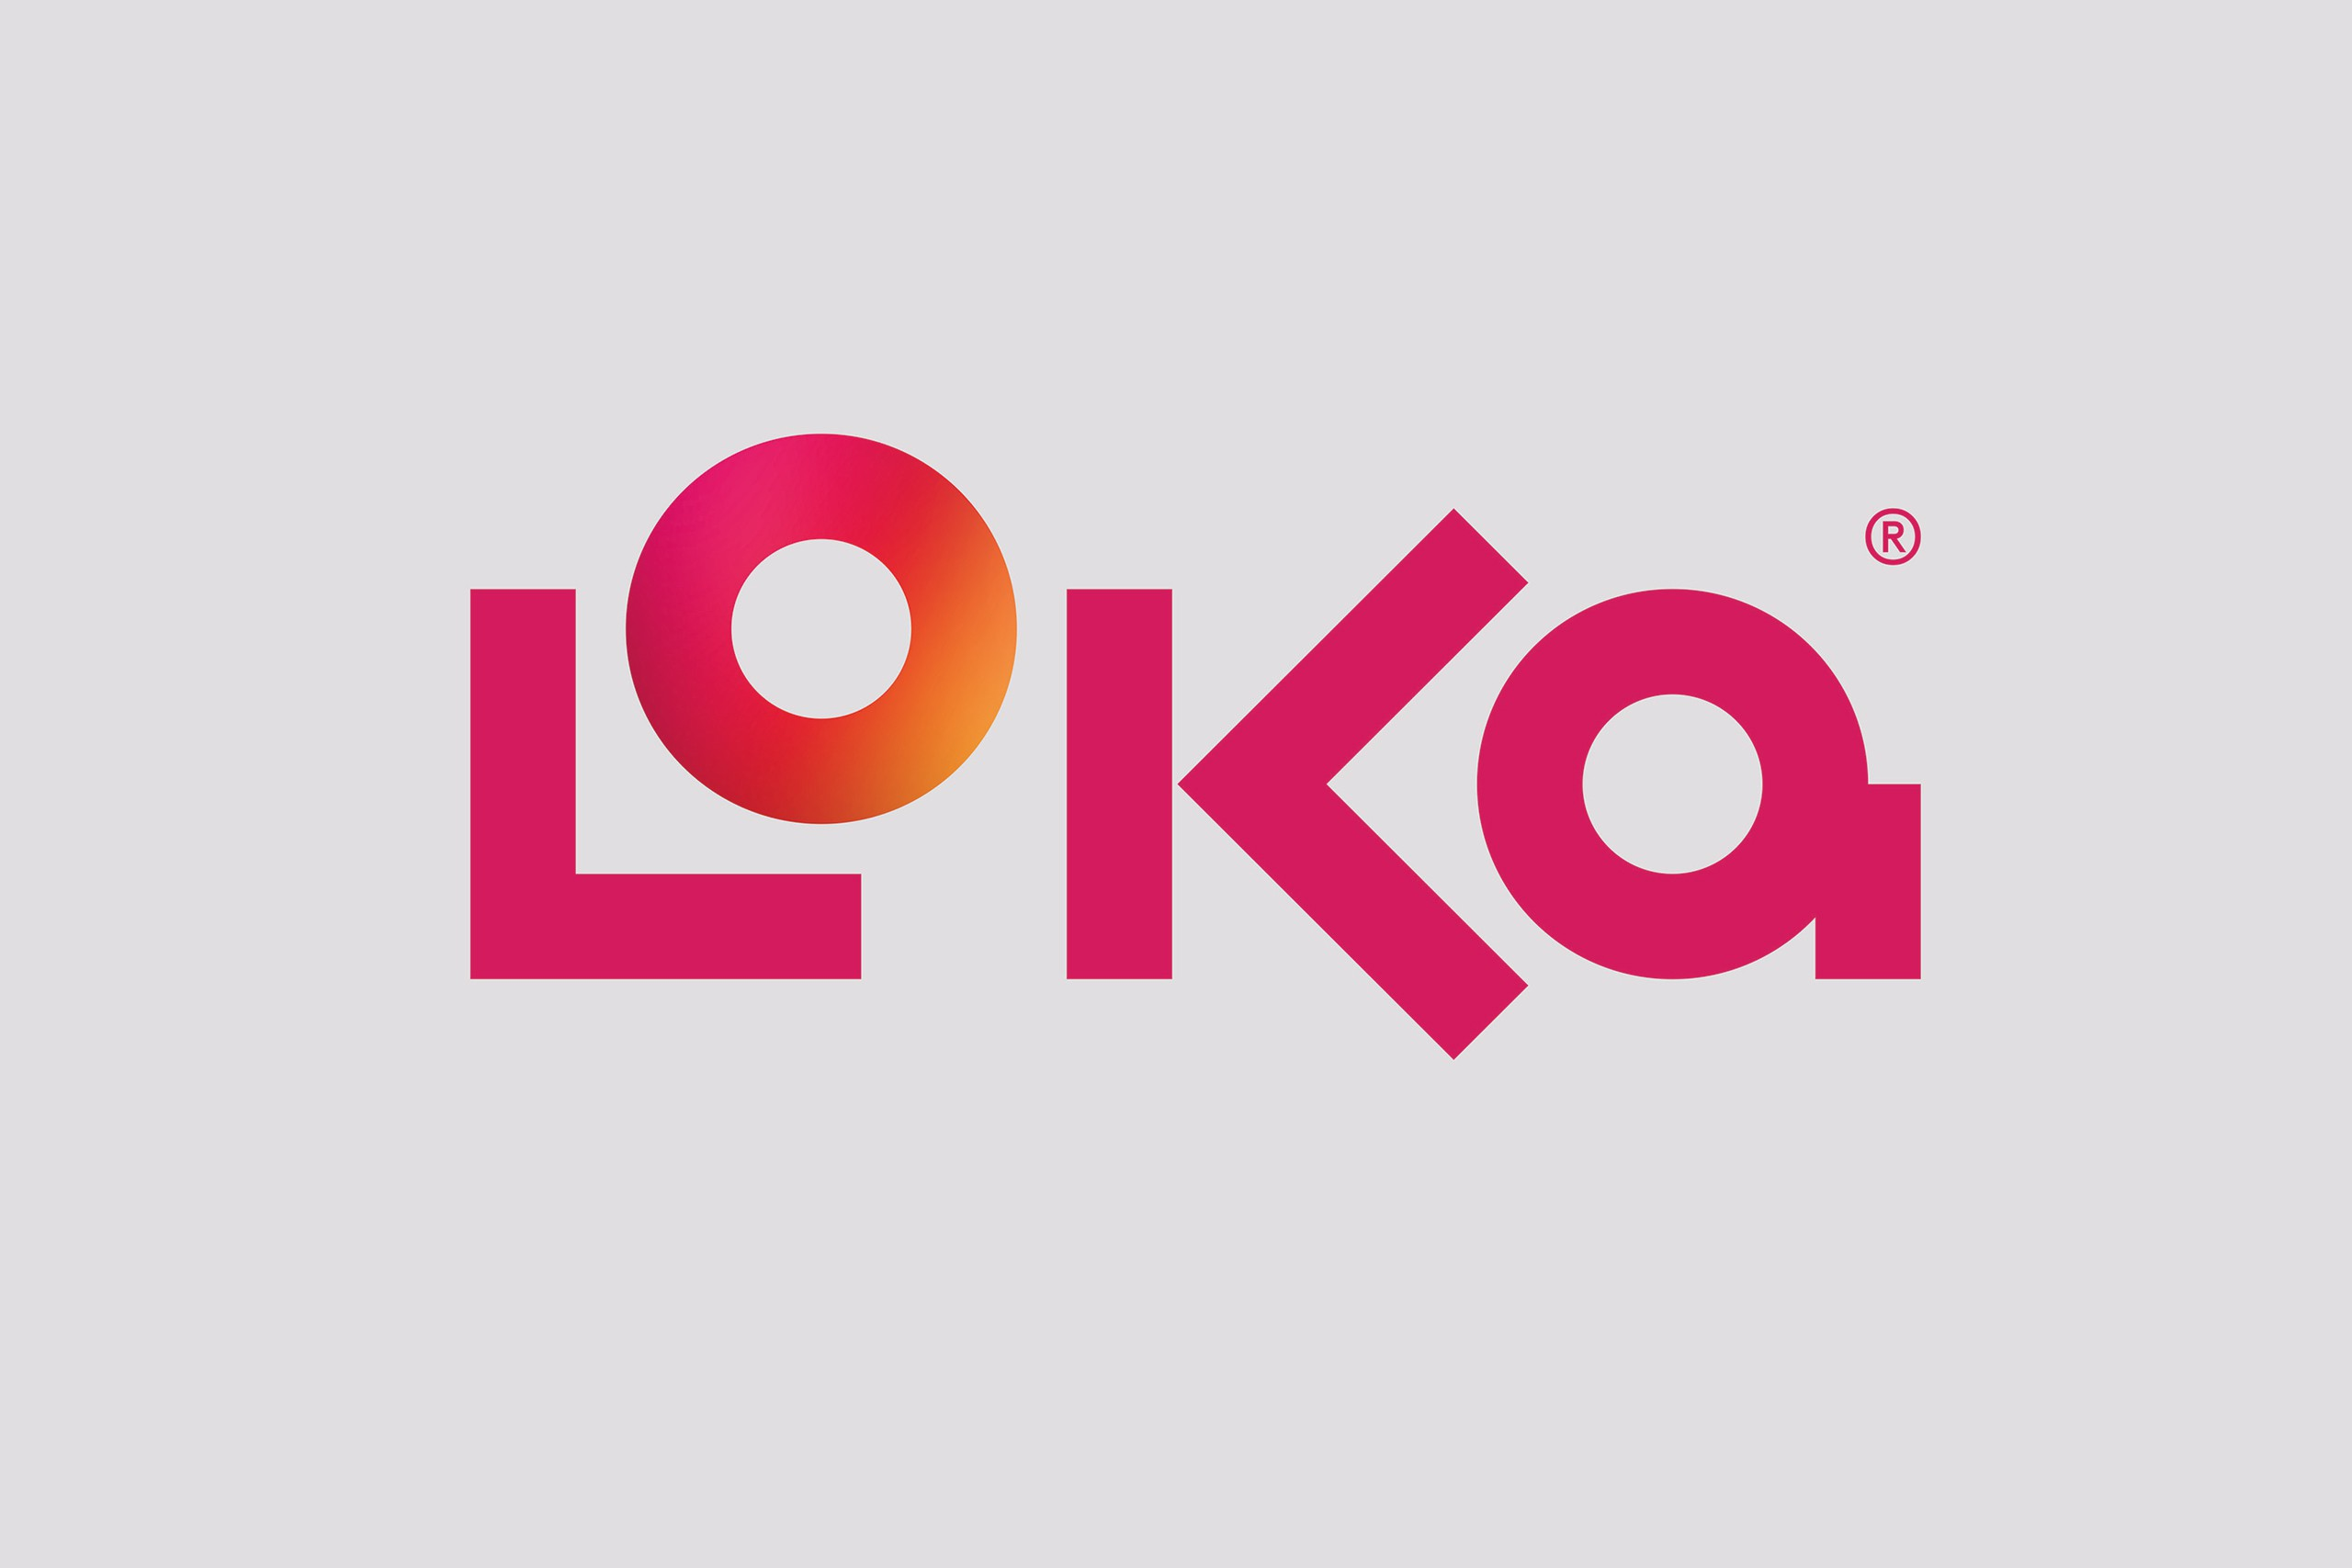 Greenwich Peninsula - Loka brand development